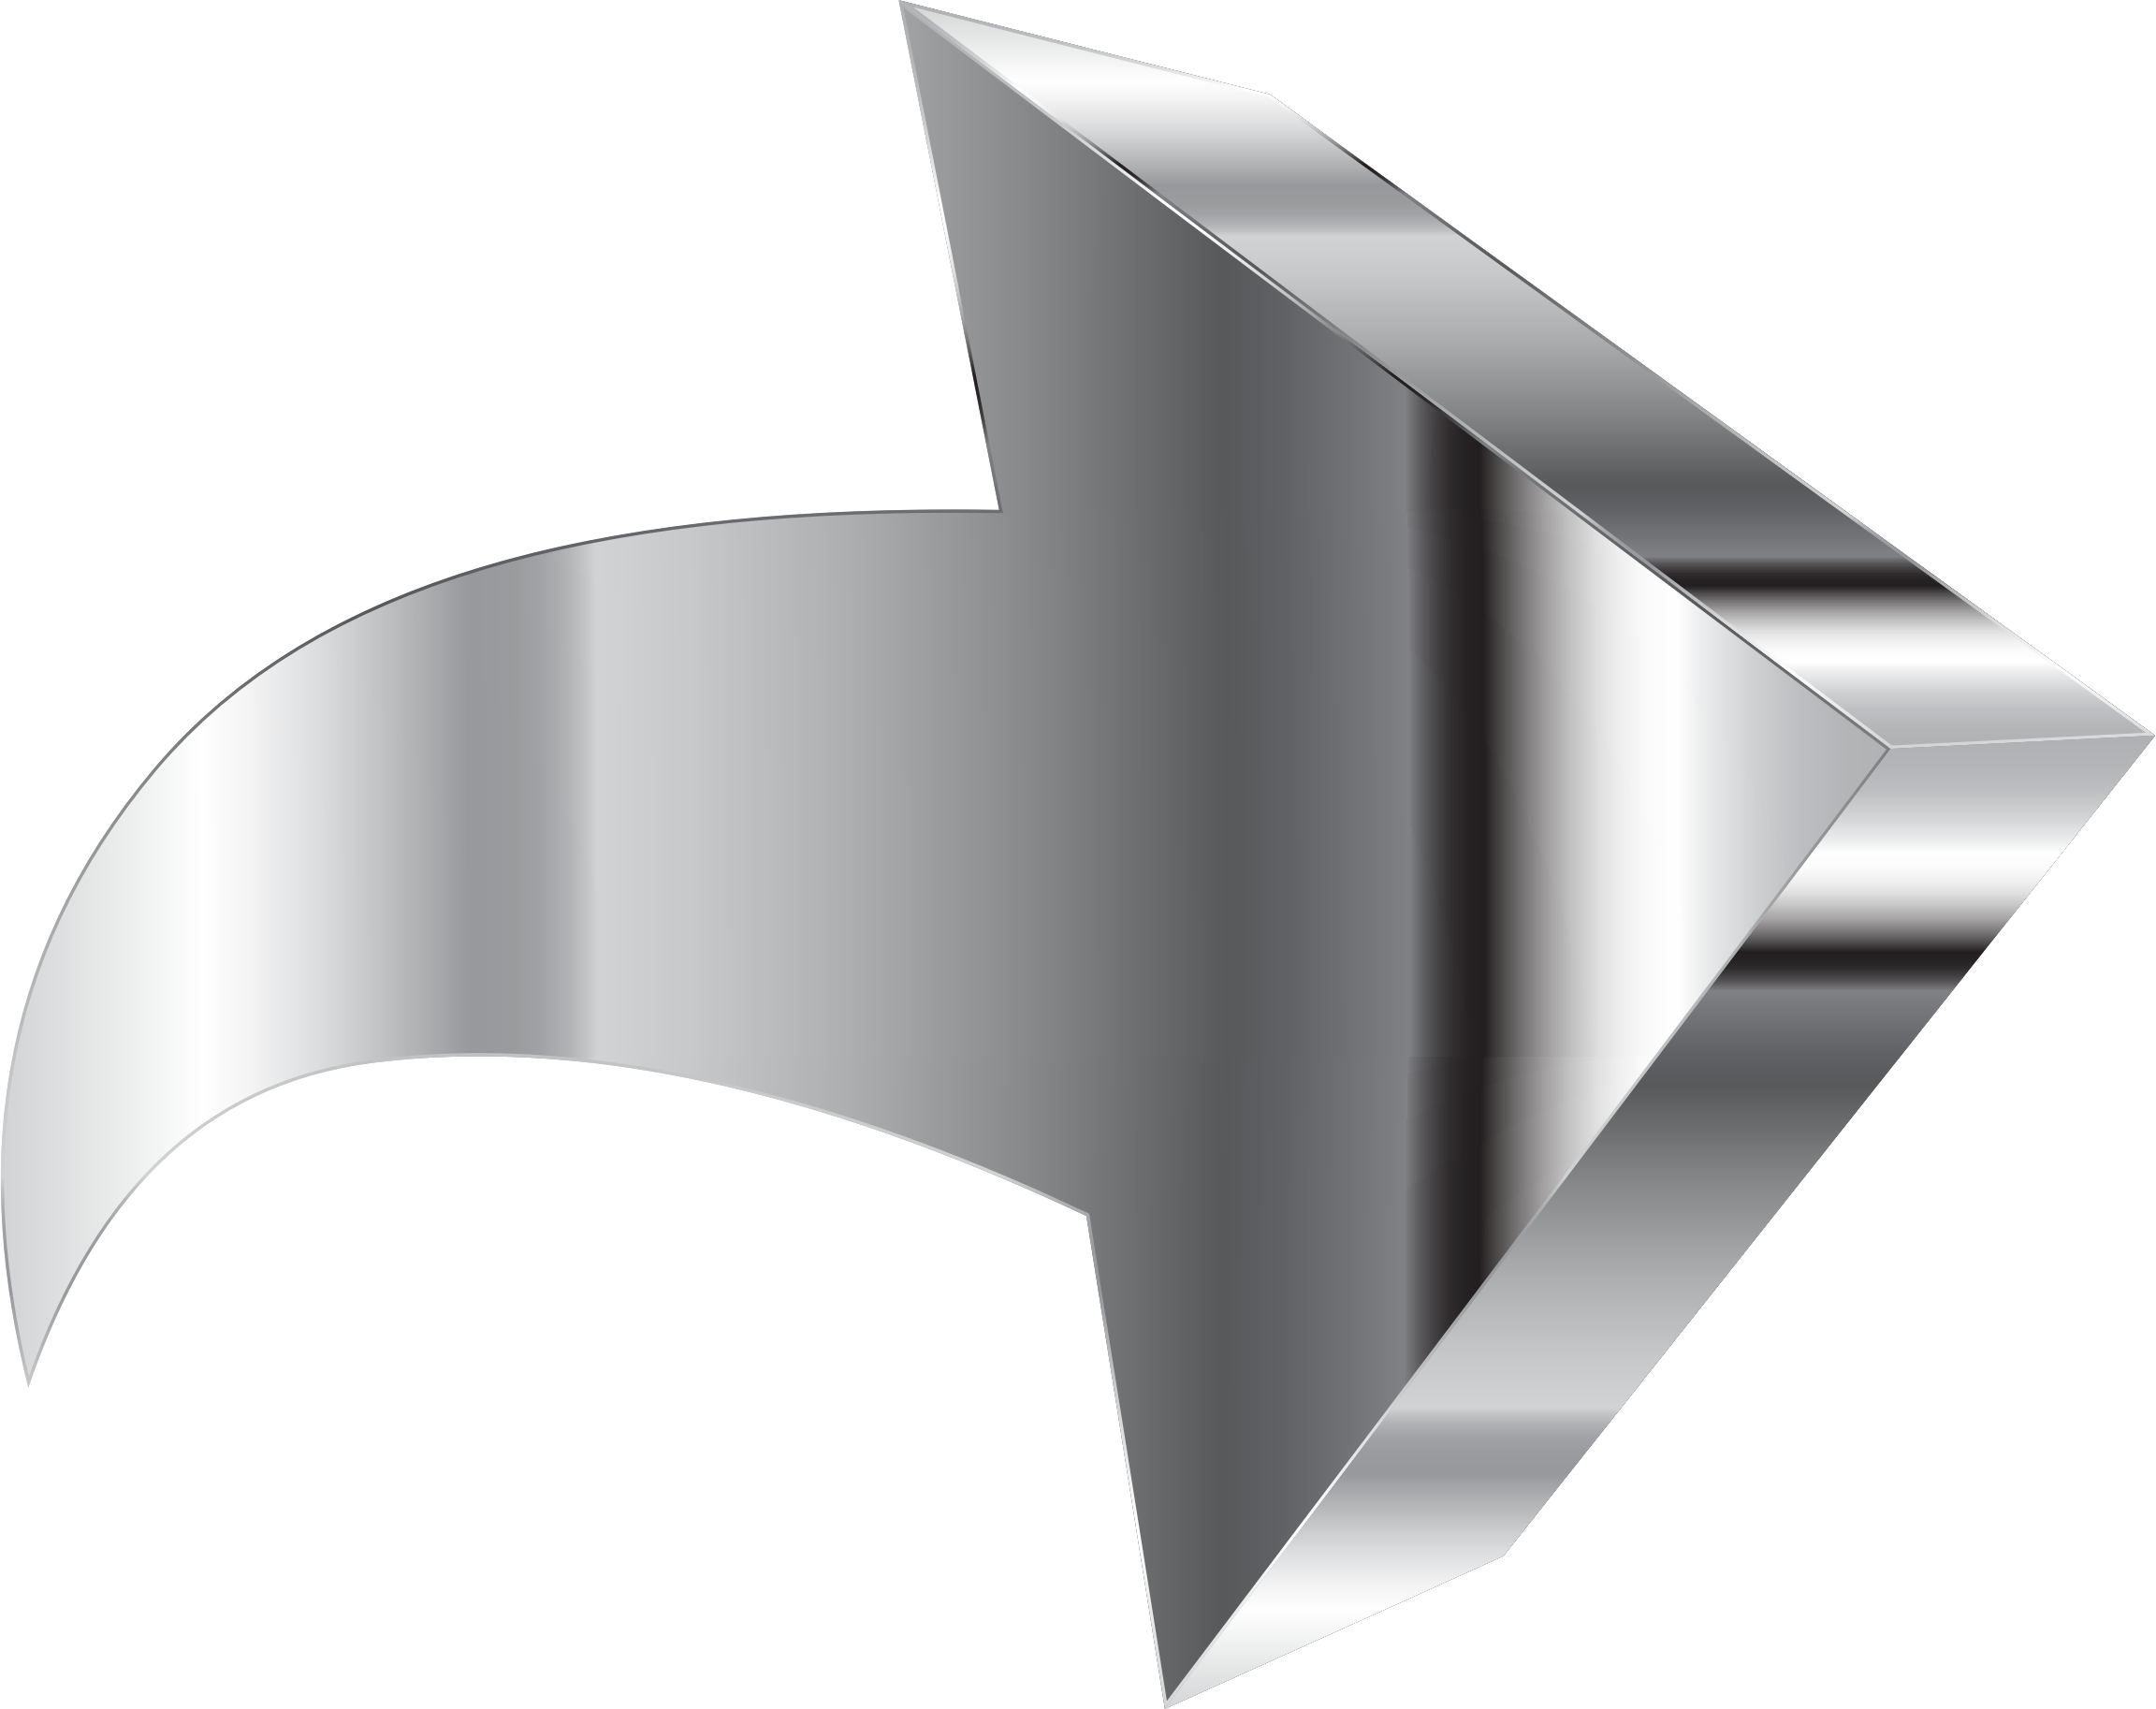 Shiny Chrome 3D Arrow by GDJ